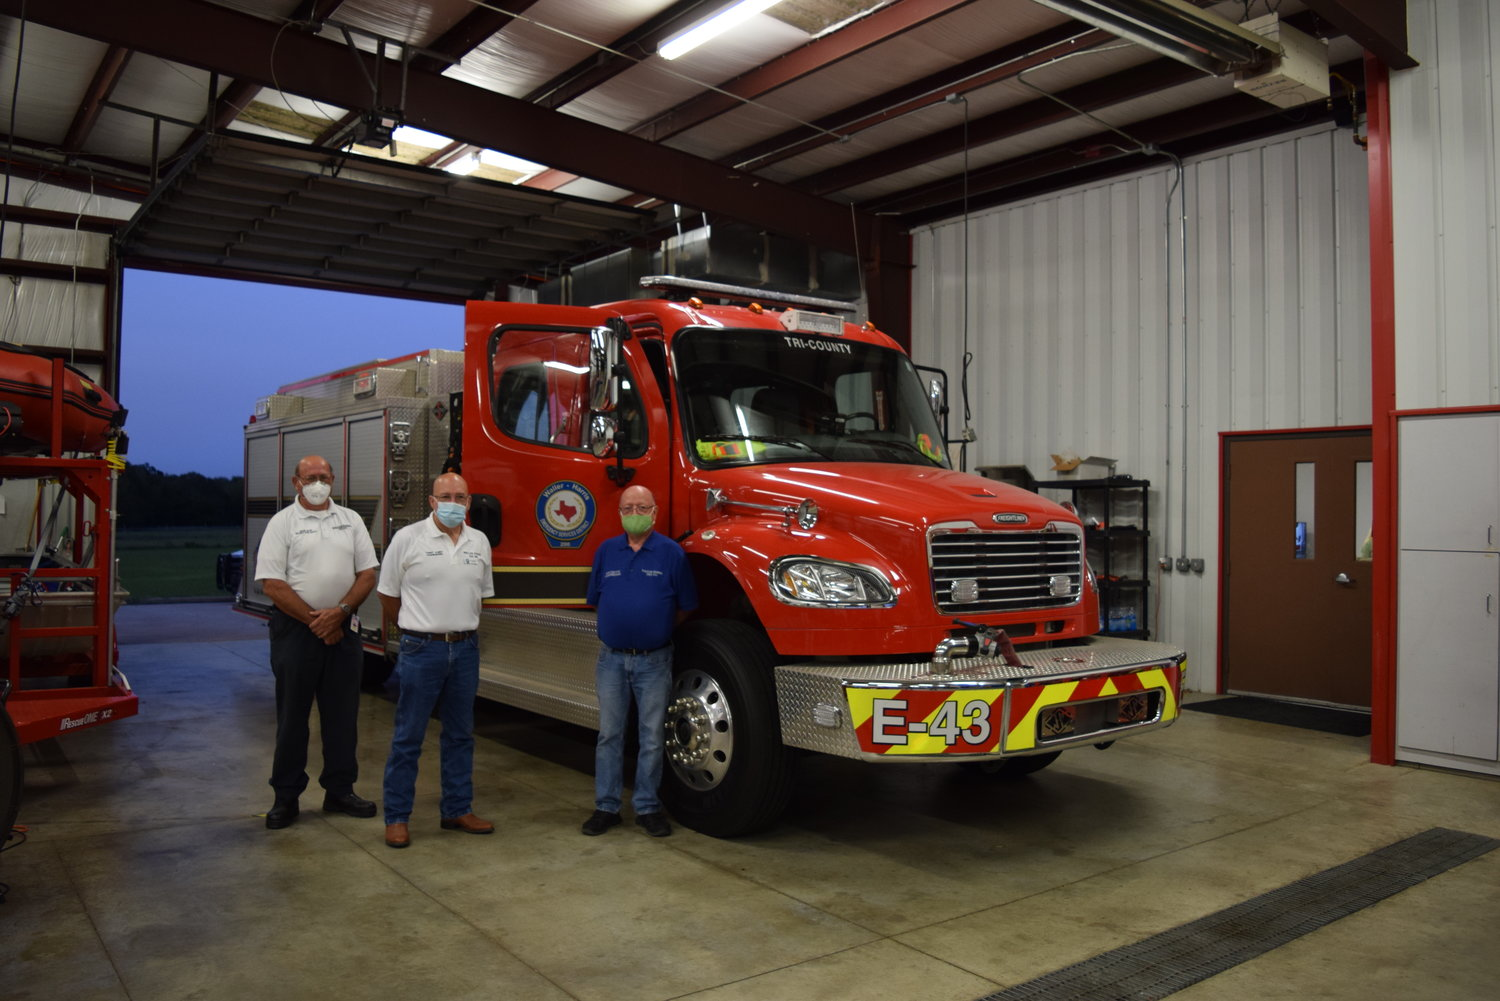 WHESD 200 commissioners (from left to right) Jimmie Orsak, Tommy Albert and Rick Dalton say the district needs additional fire equipment like the nearby fire truck as well as ambulances in order to meet the needs of its residents and visitors to the district.